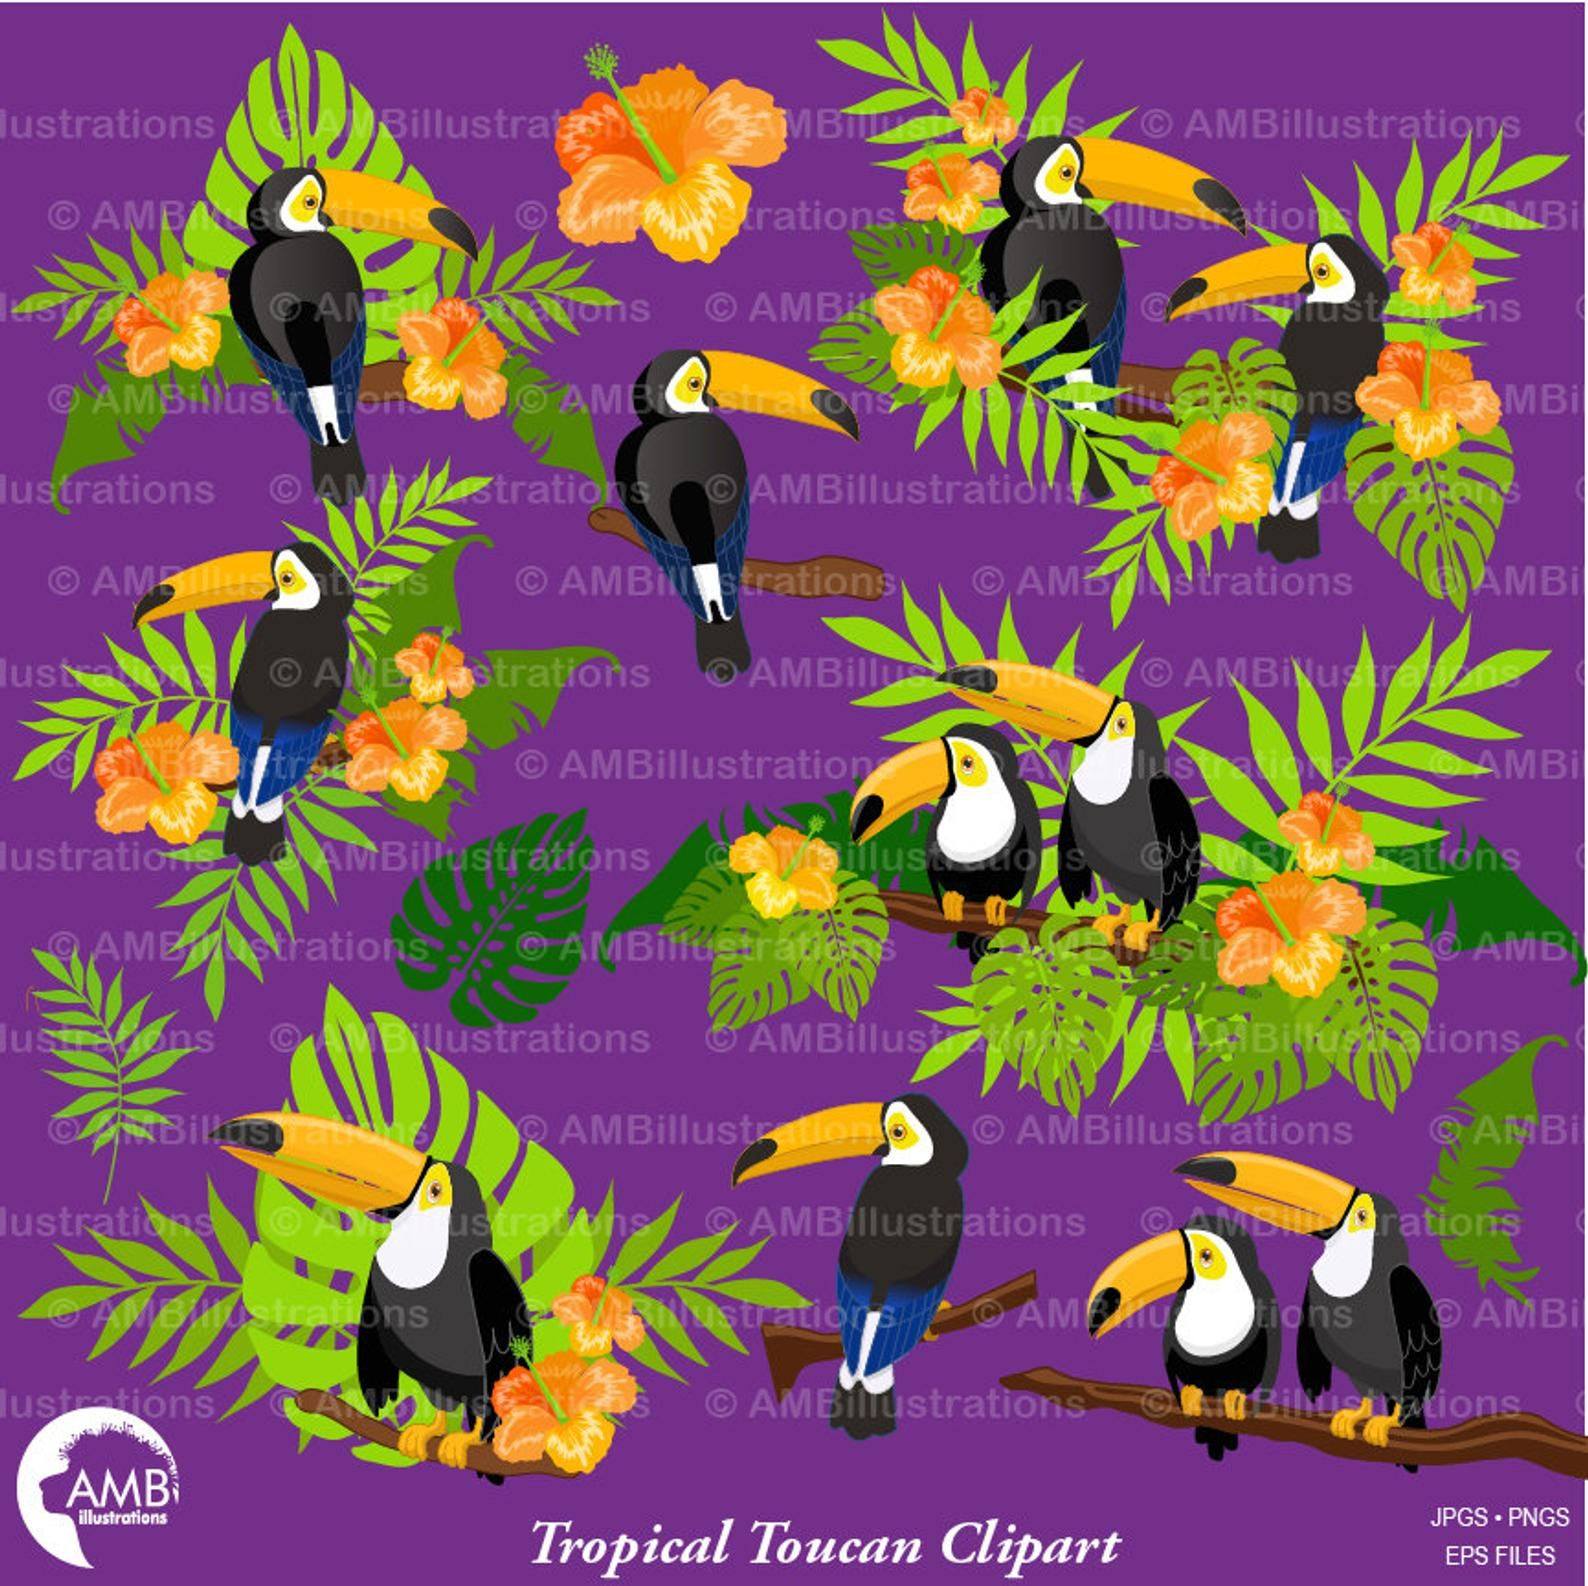 Tropical toucan clipart graphic free download Toucan Clipart, tropical Toucan Clipart, Tropical Clipart ... graphic free download